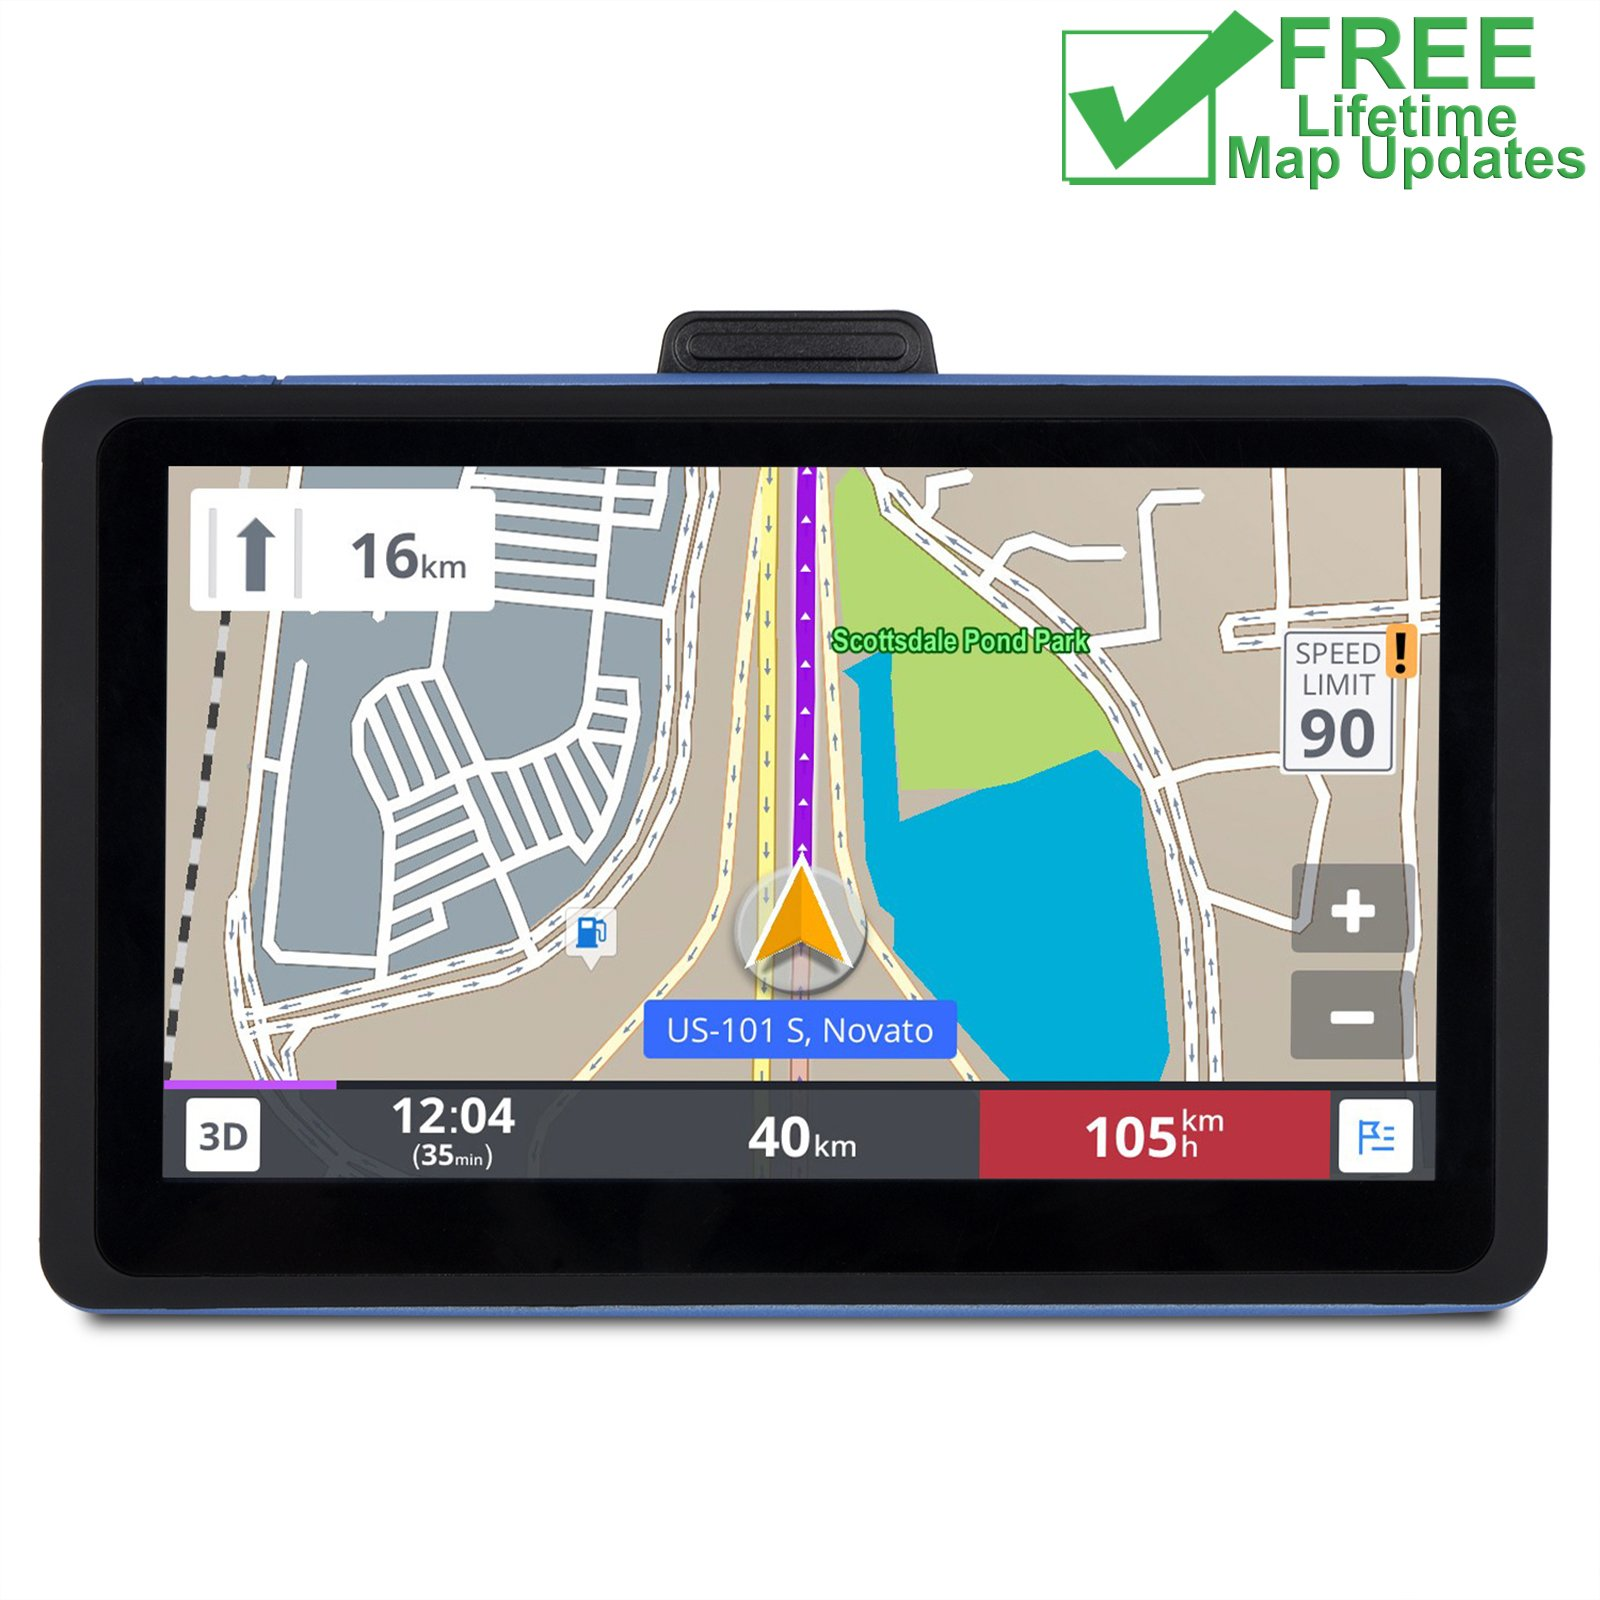 MYH GPS Navigation for Car with Lifetime Map Updates, 7 Inch HD 8GB Spoken Turn-by-Turn Vehicle GPS Navigator Navigation System with USB Cable, Driver Alerts